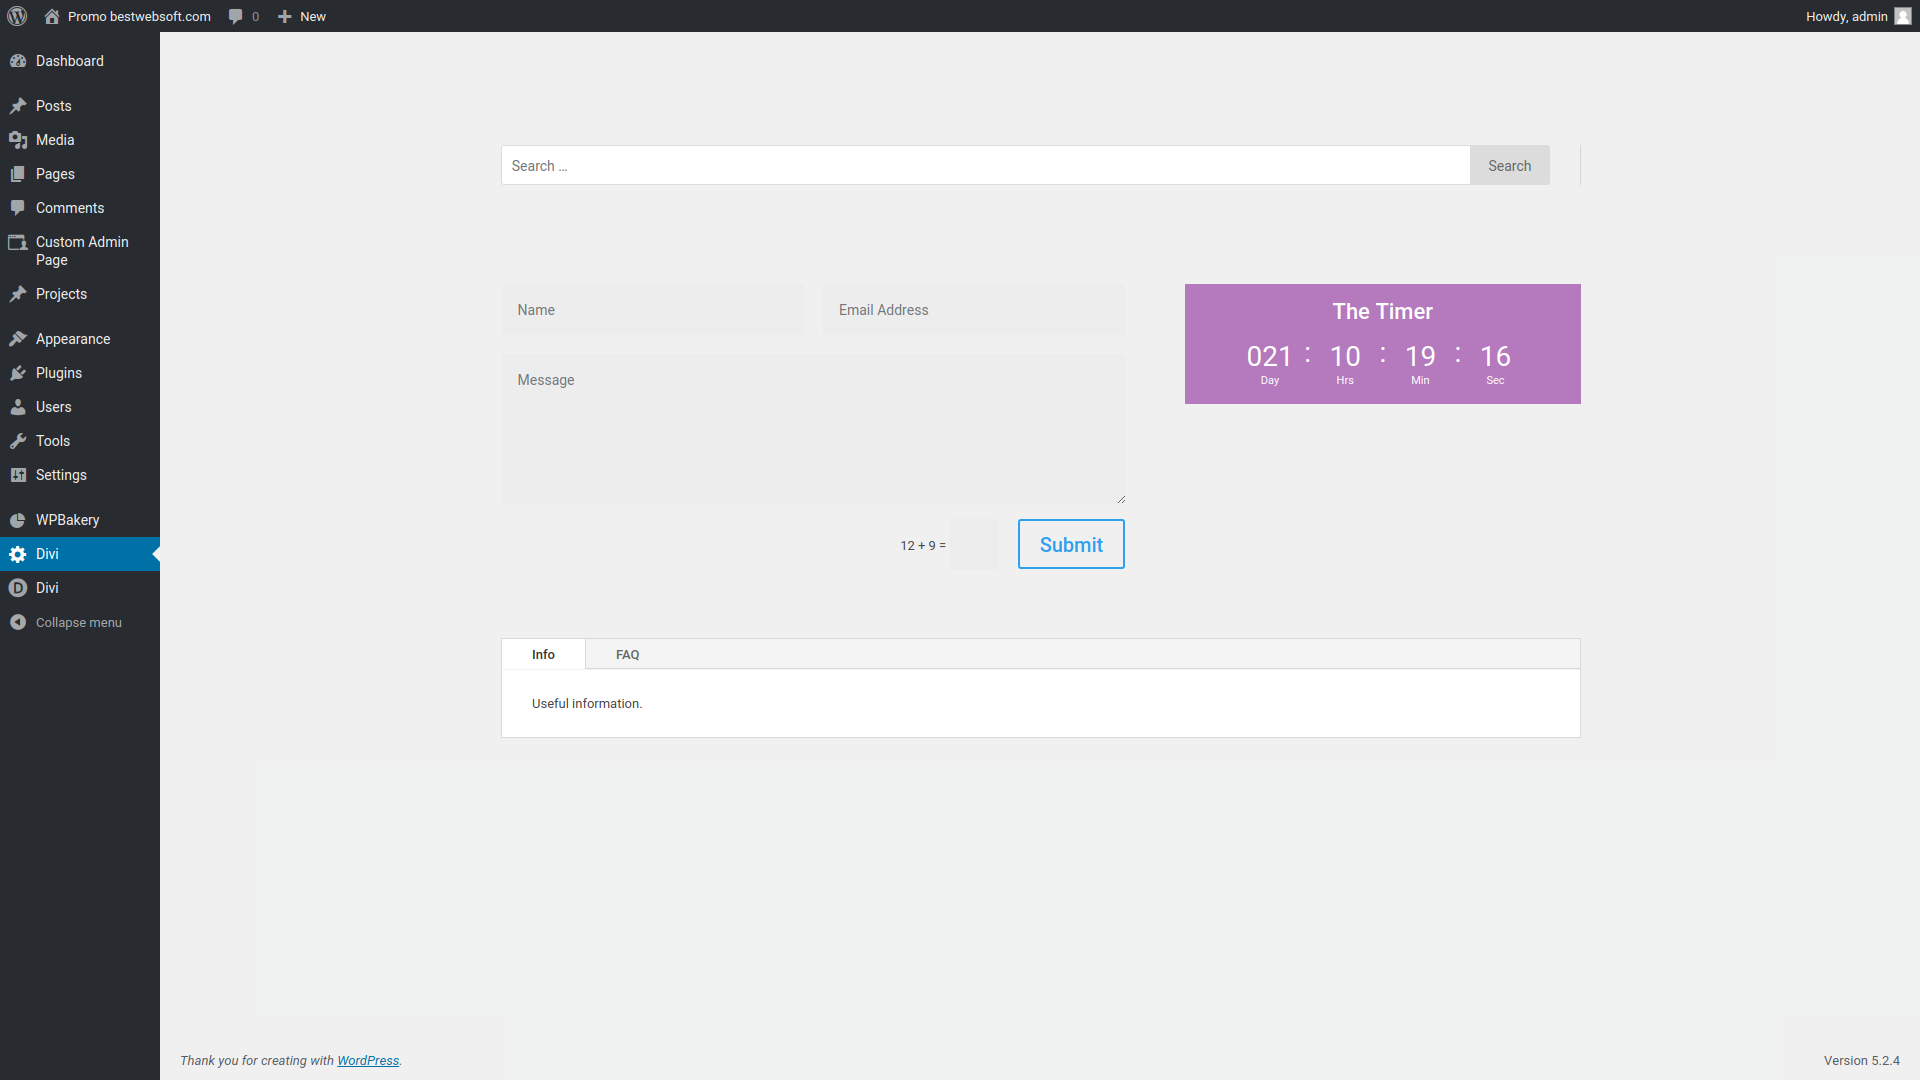 custom admin page screenshot 1